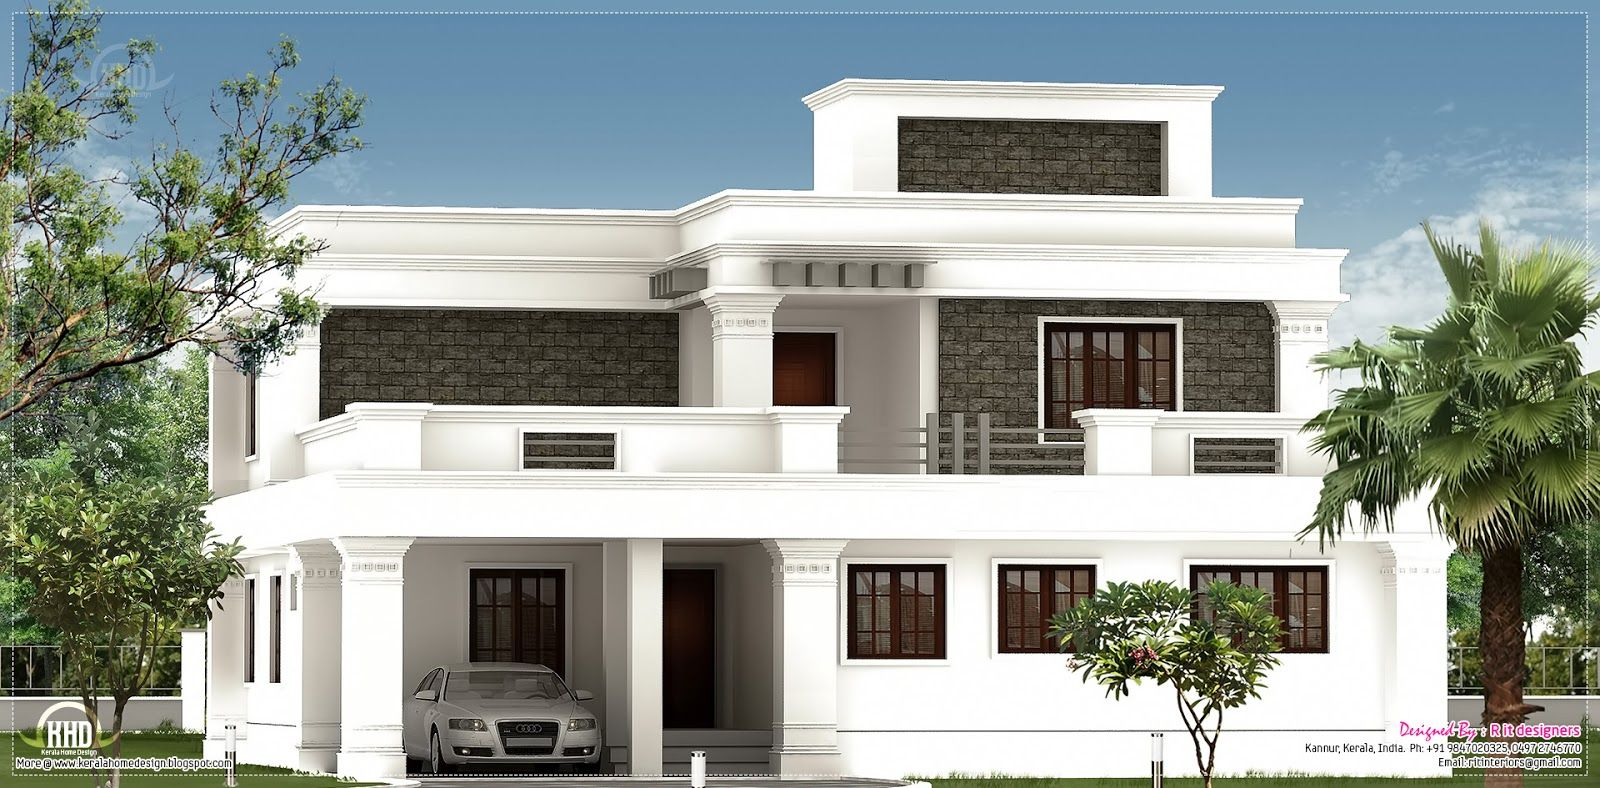 Flat roof homes designs flat roof villa exterior in 2400 sq feet kerala